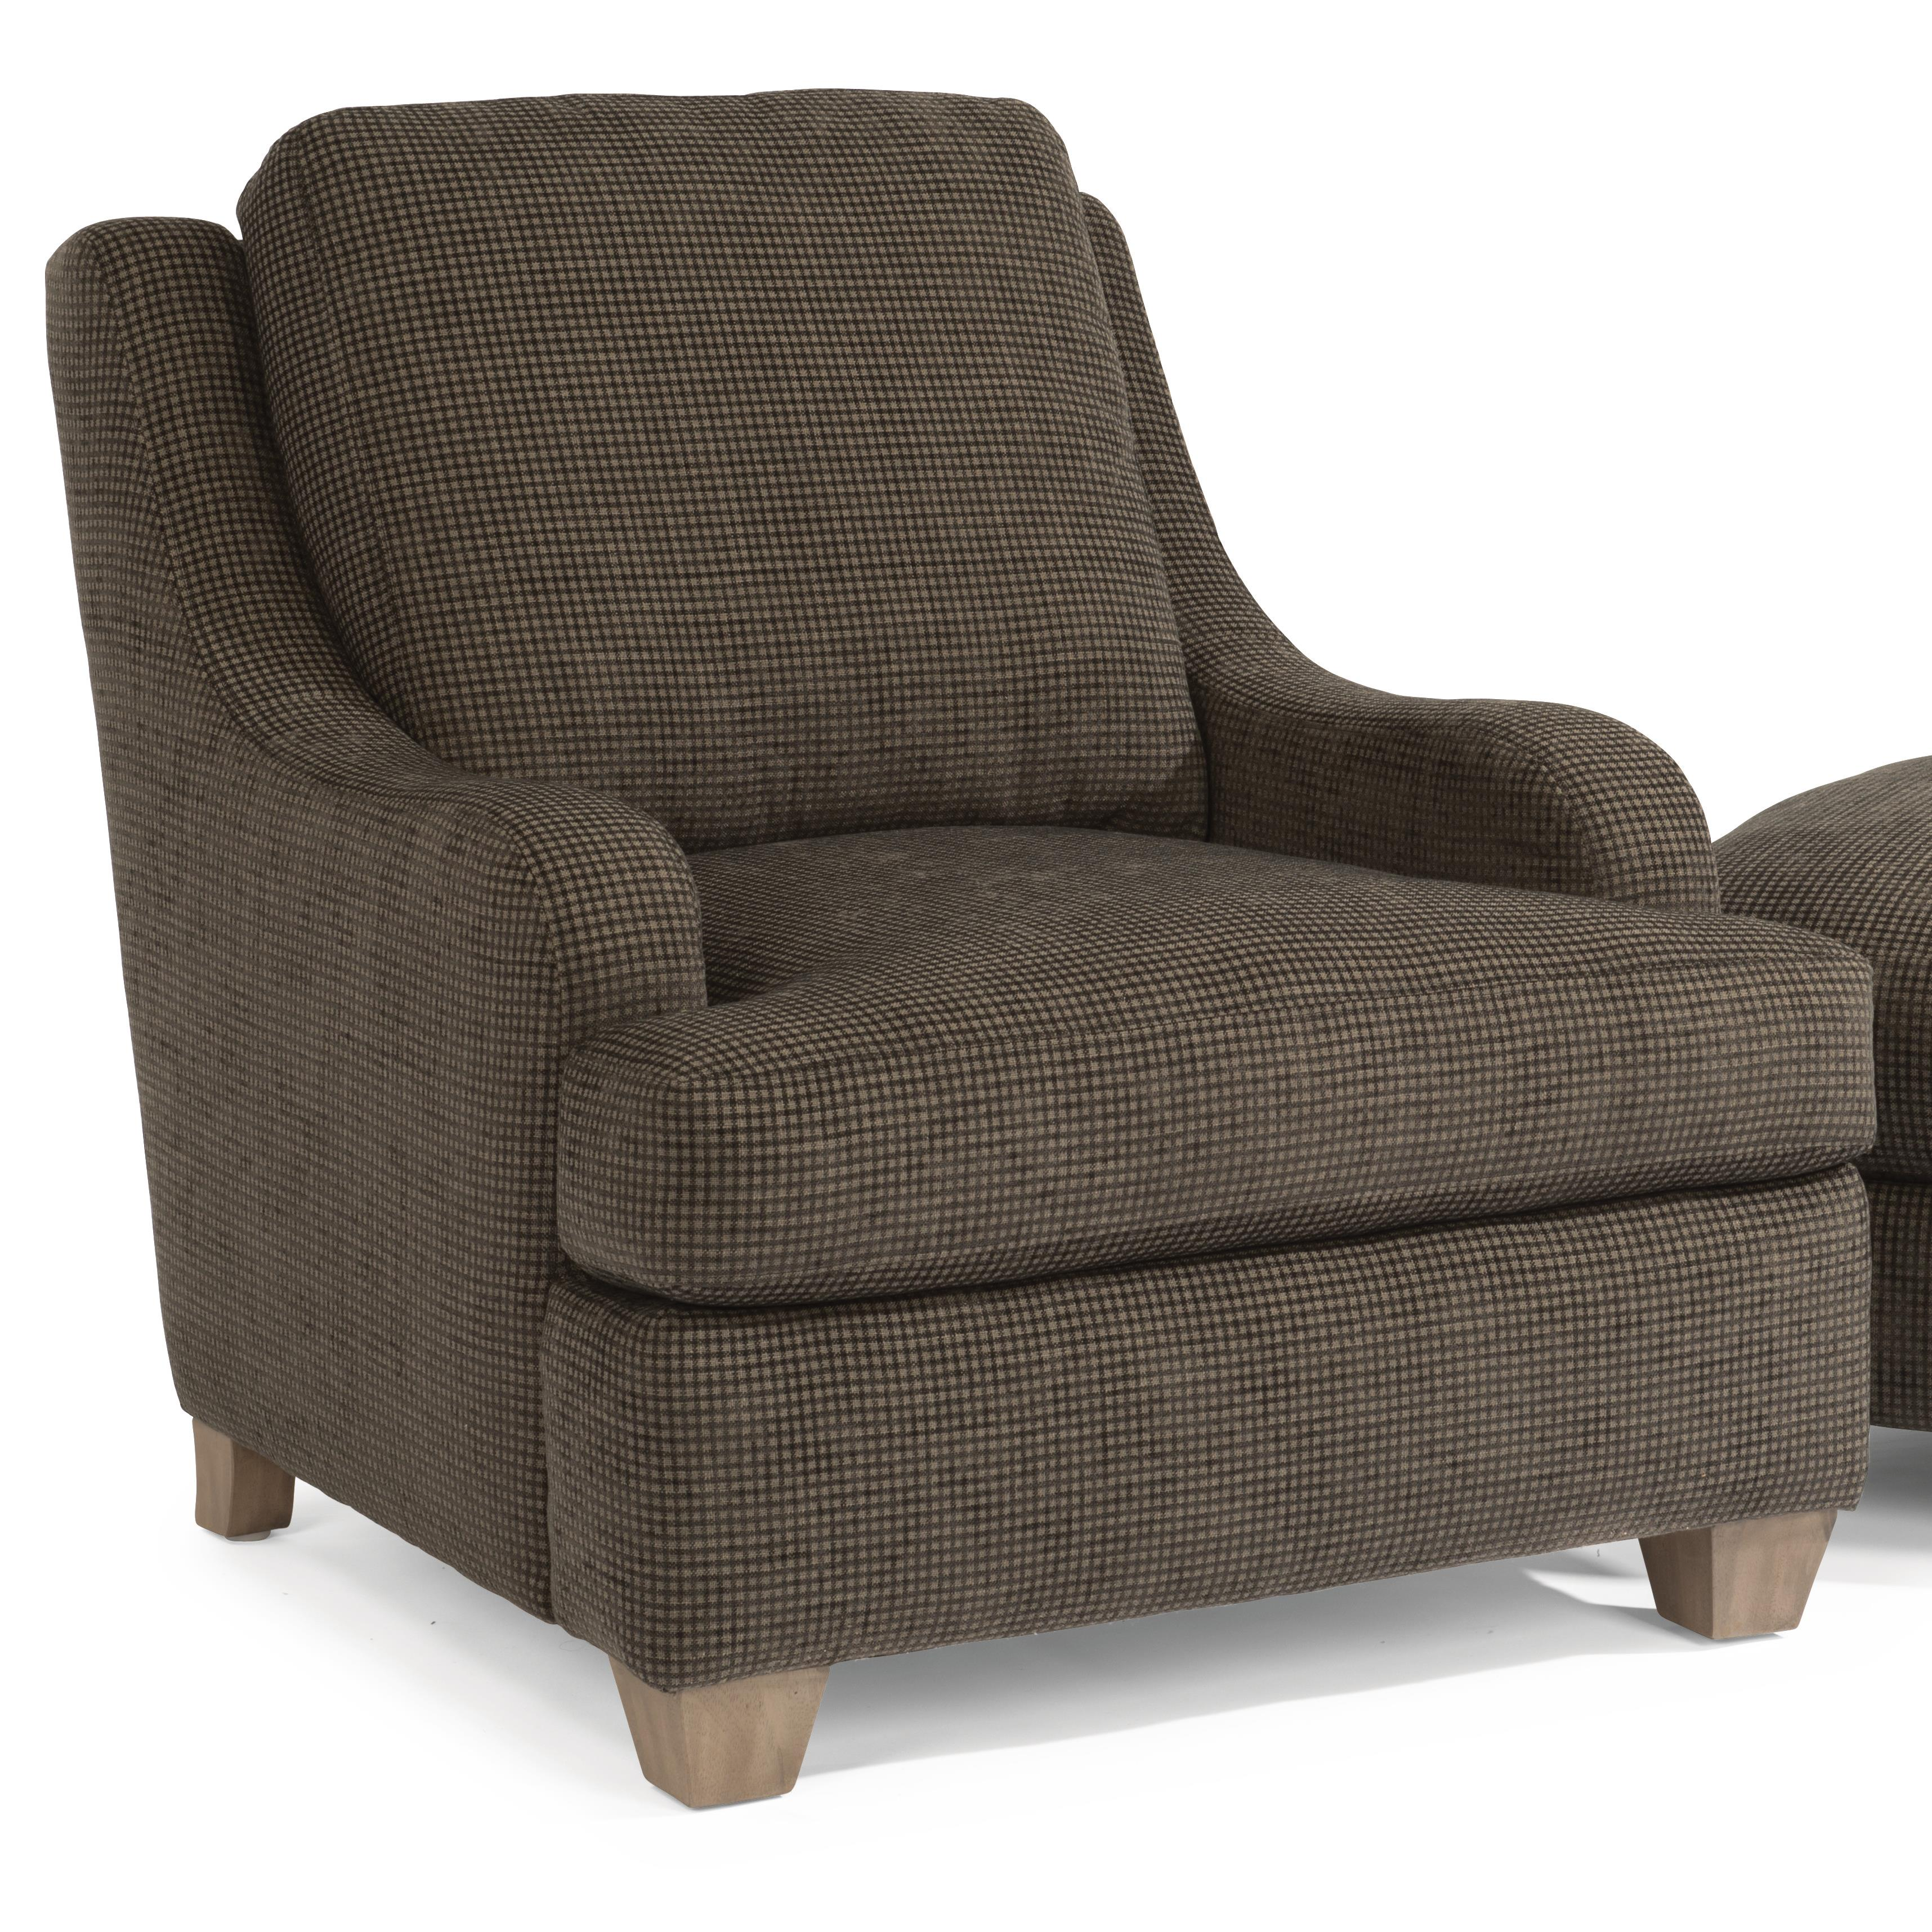 Flexsteel Accents Salem Chair - Item Number: 0111-10-958-02